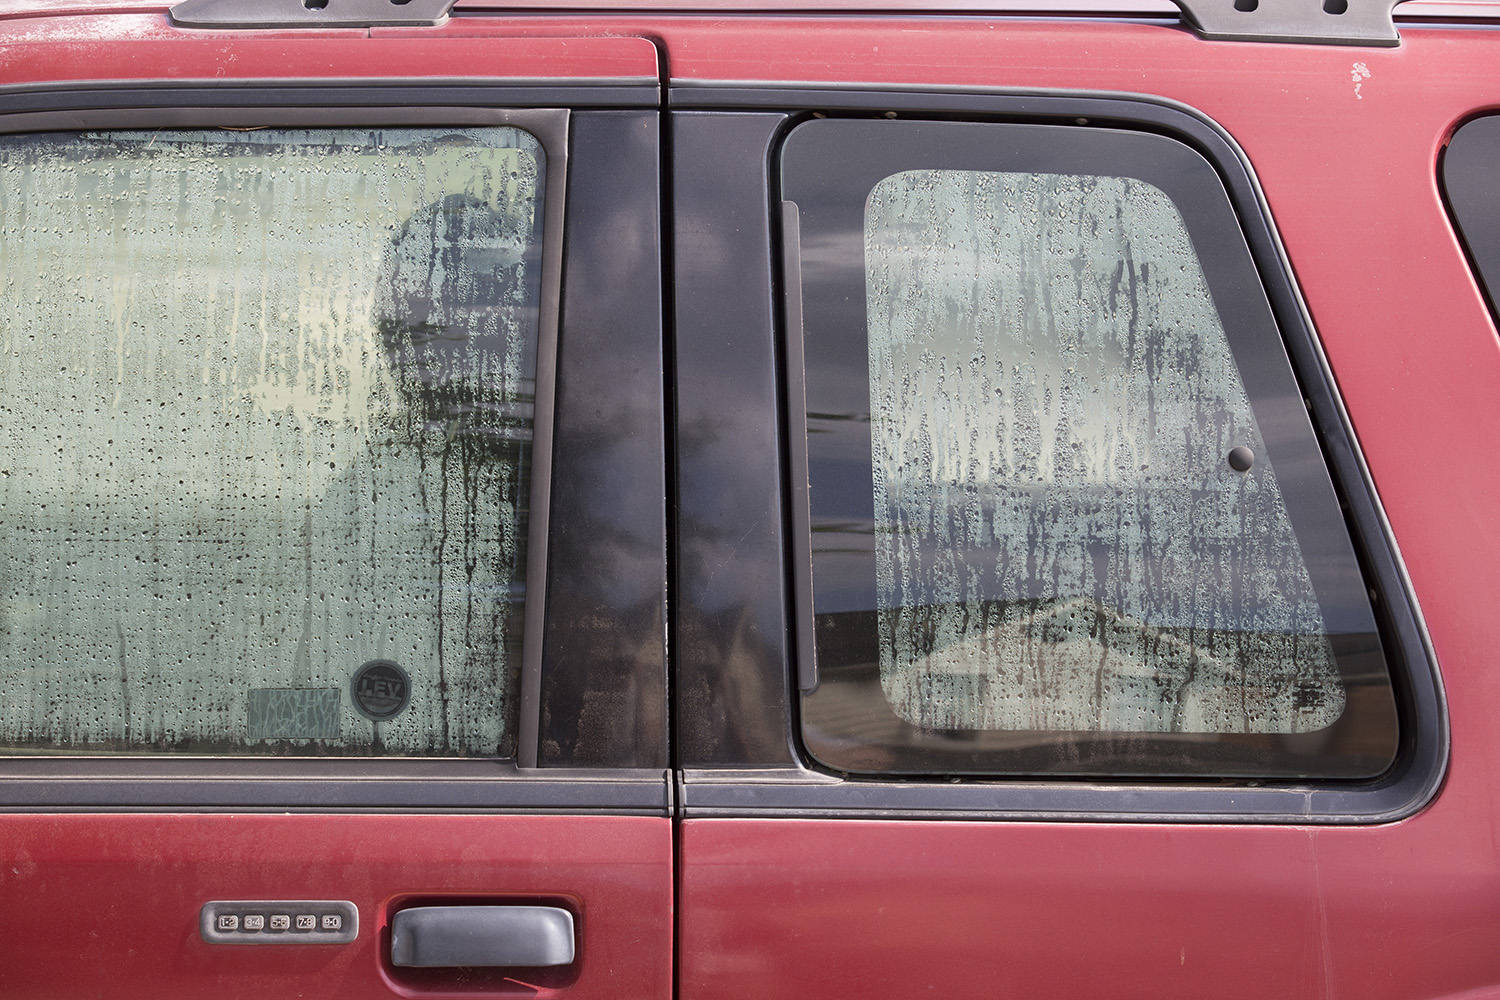 The windows of Eddie Rogers' flooded Ford Explorer steam up on the inside.